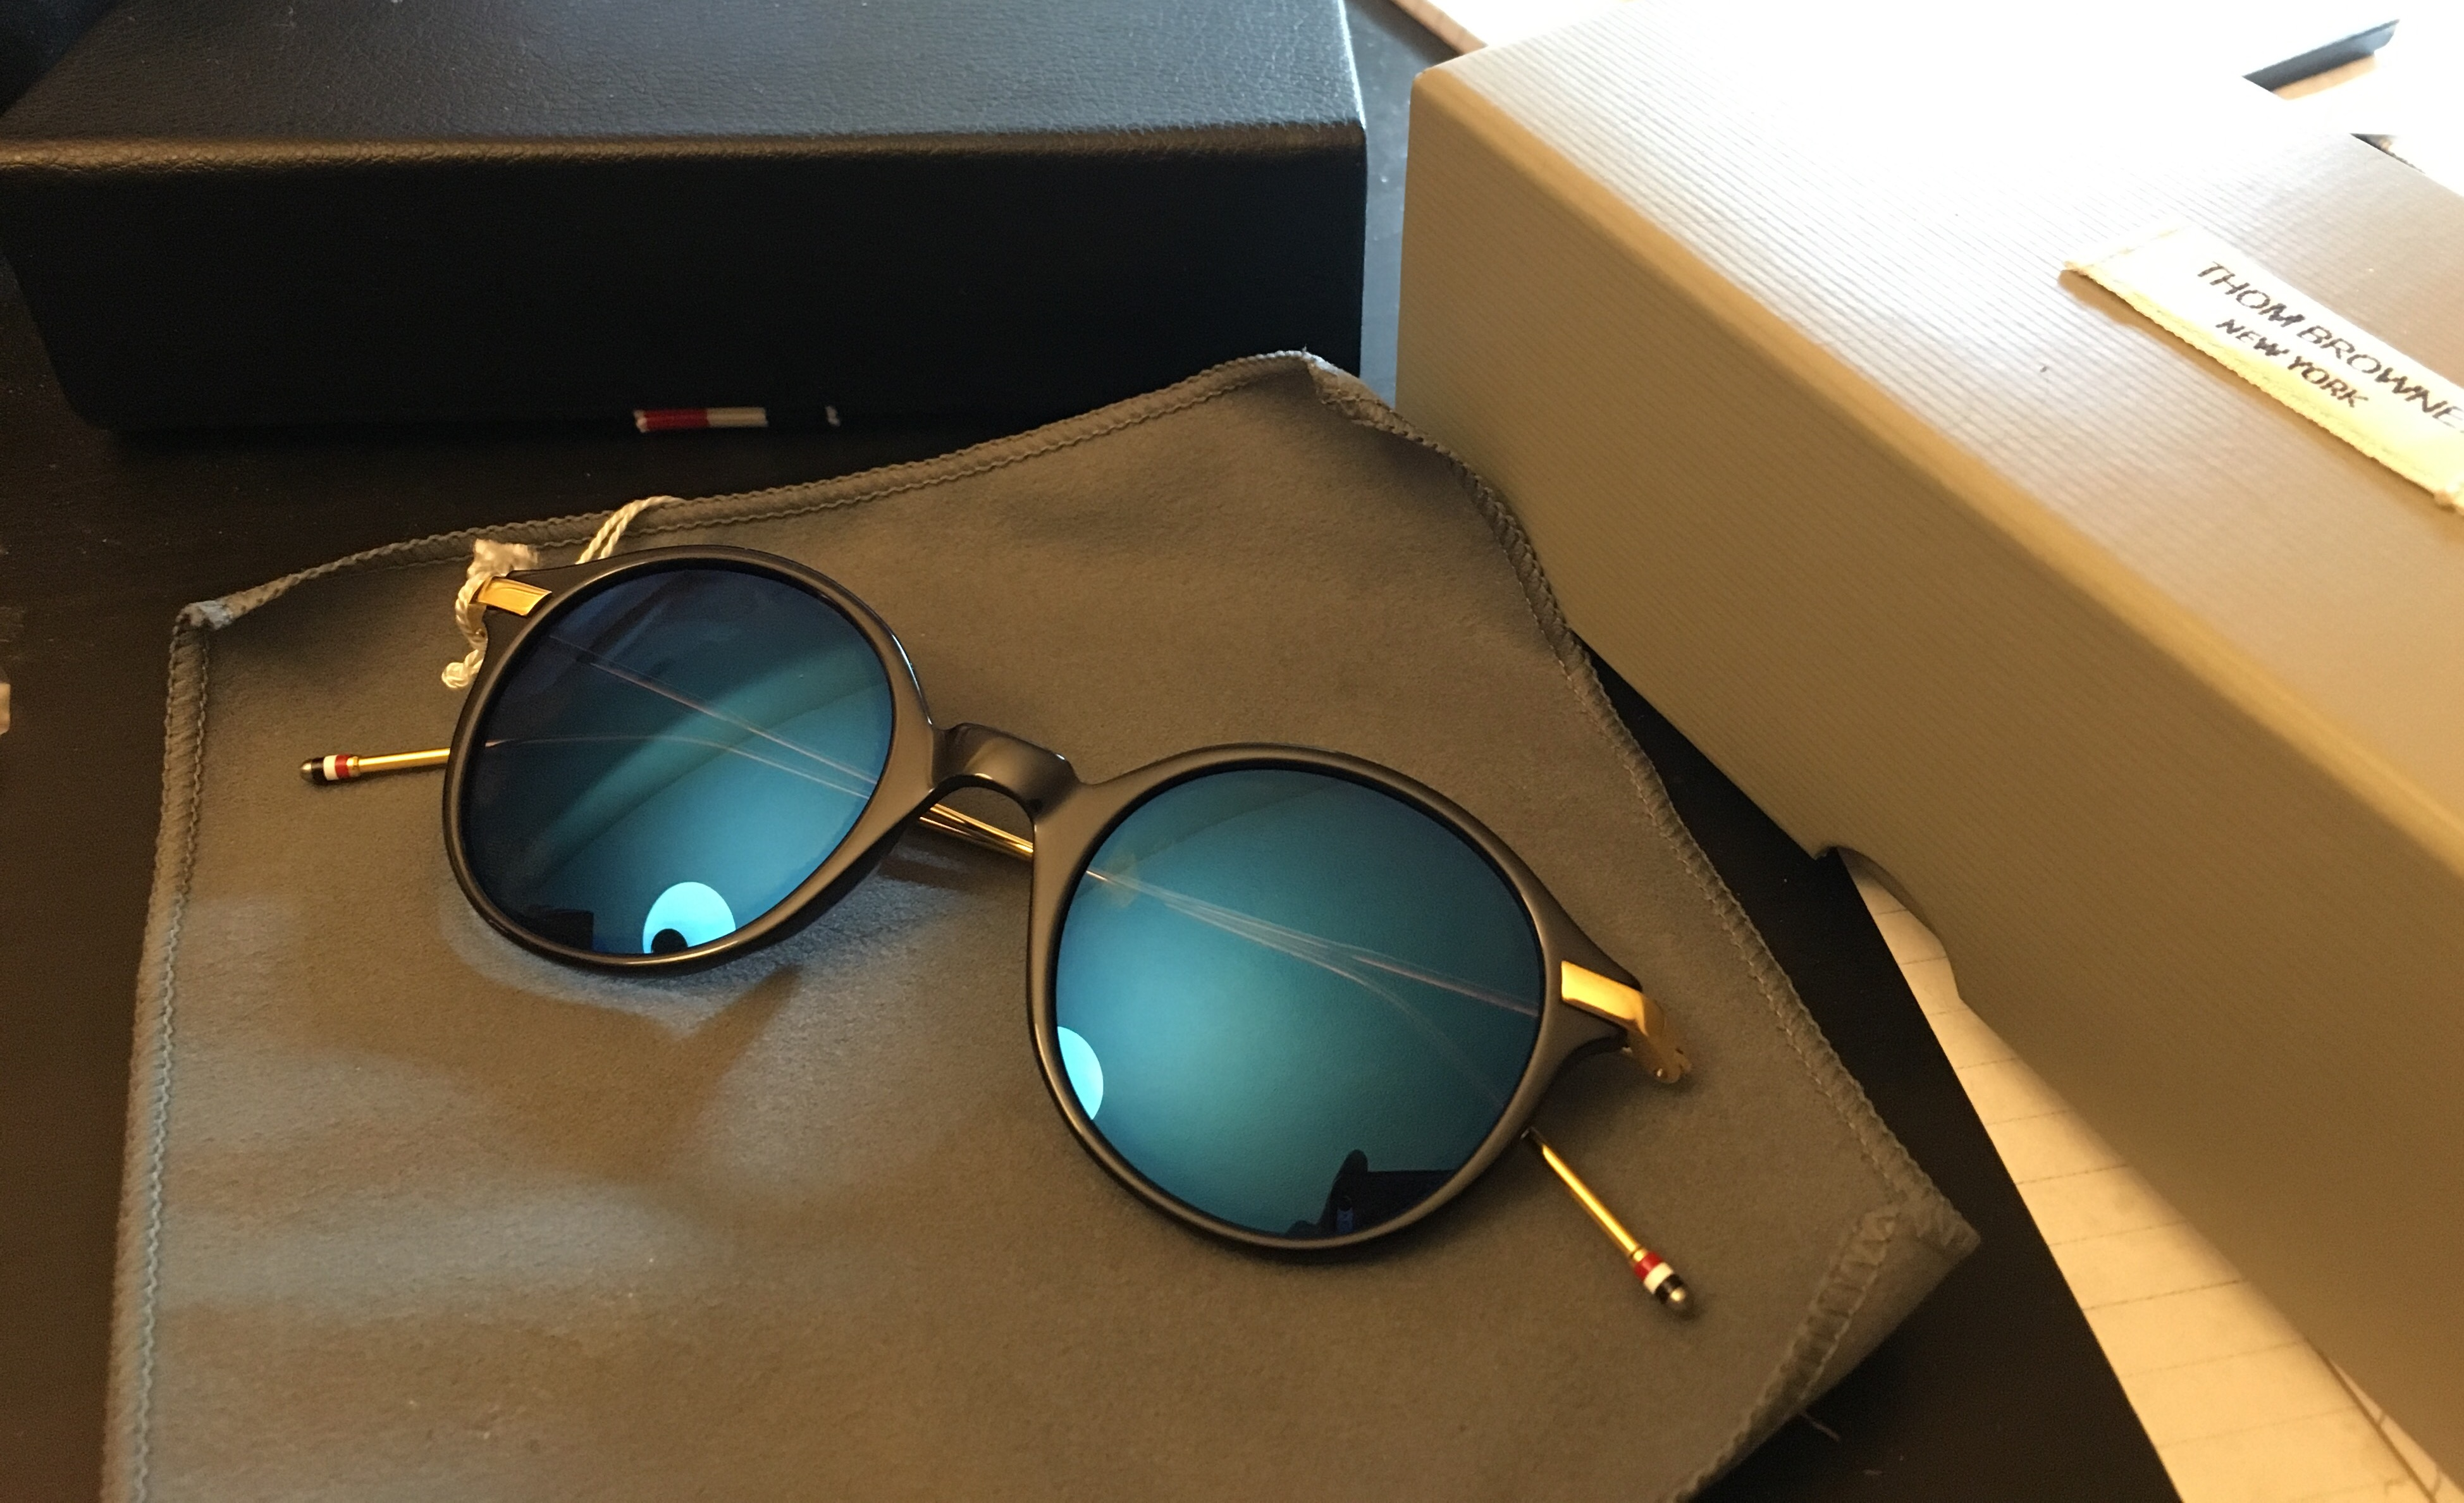 1c9810f3a80 Thom Browne Thom Browne sunglasses TB 708 Size one size - Sunglasses for  Sale - Grailed